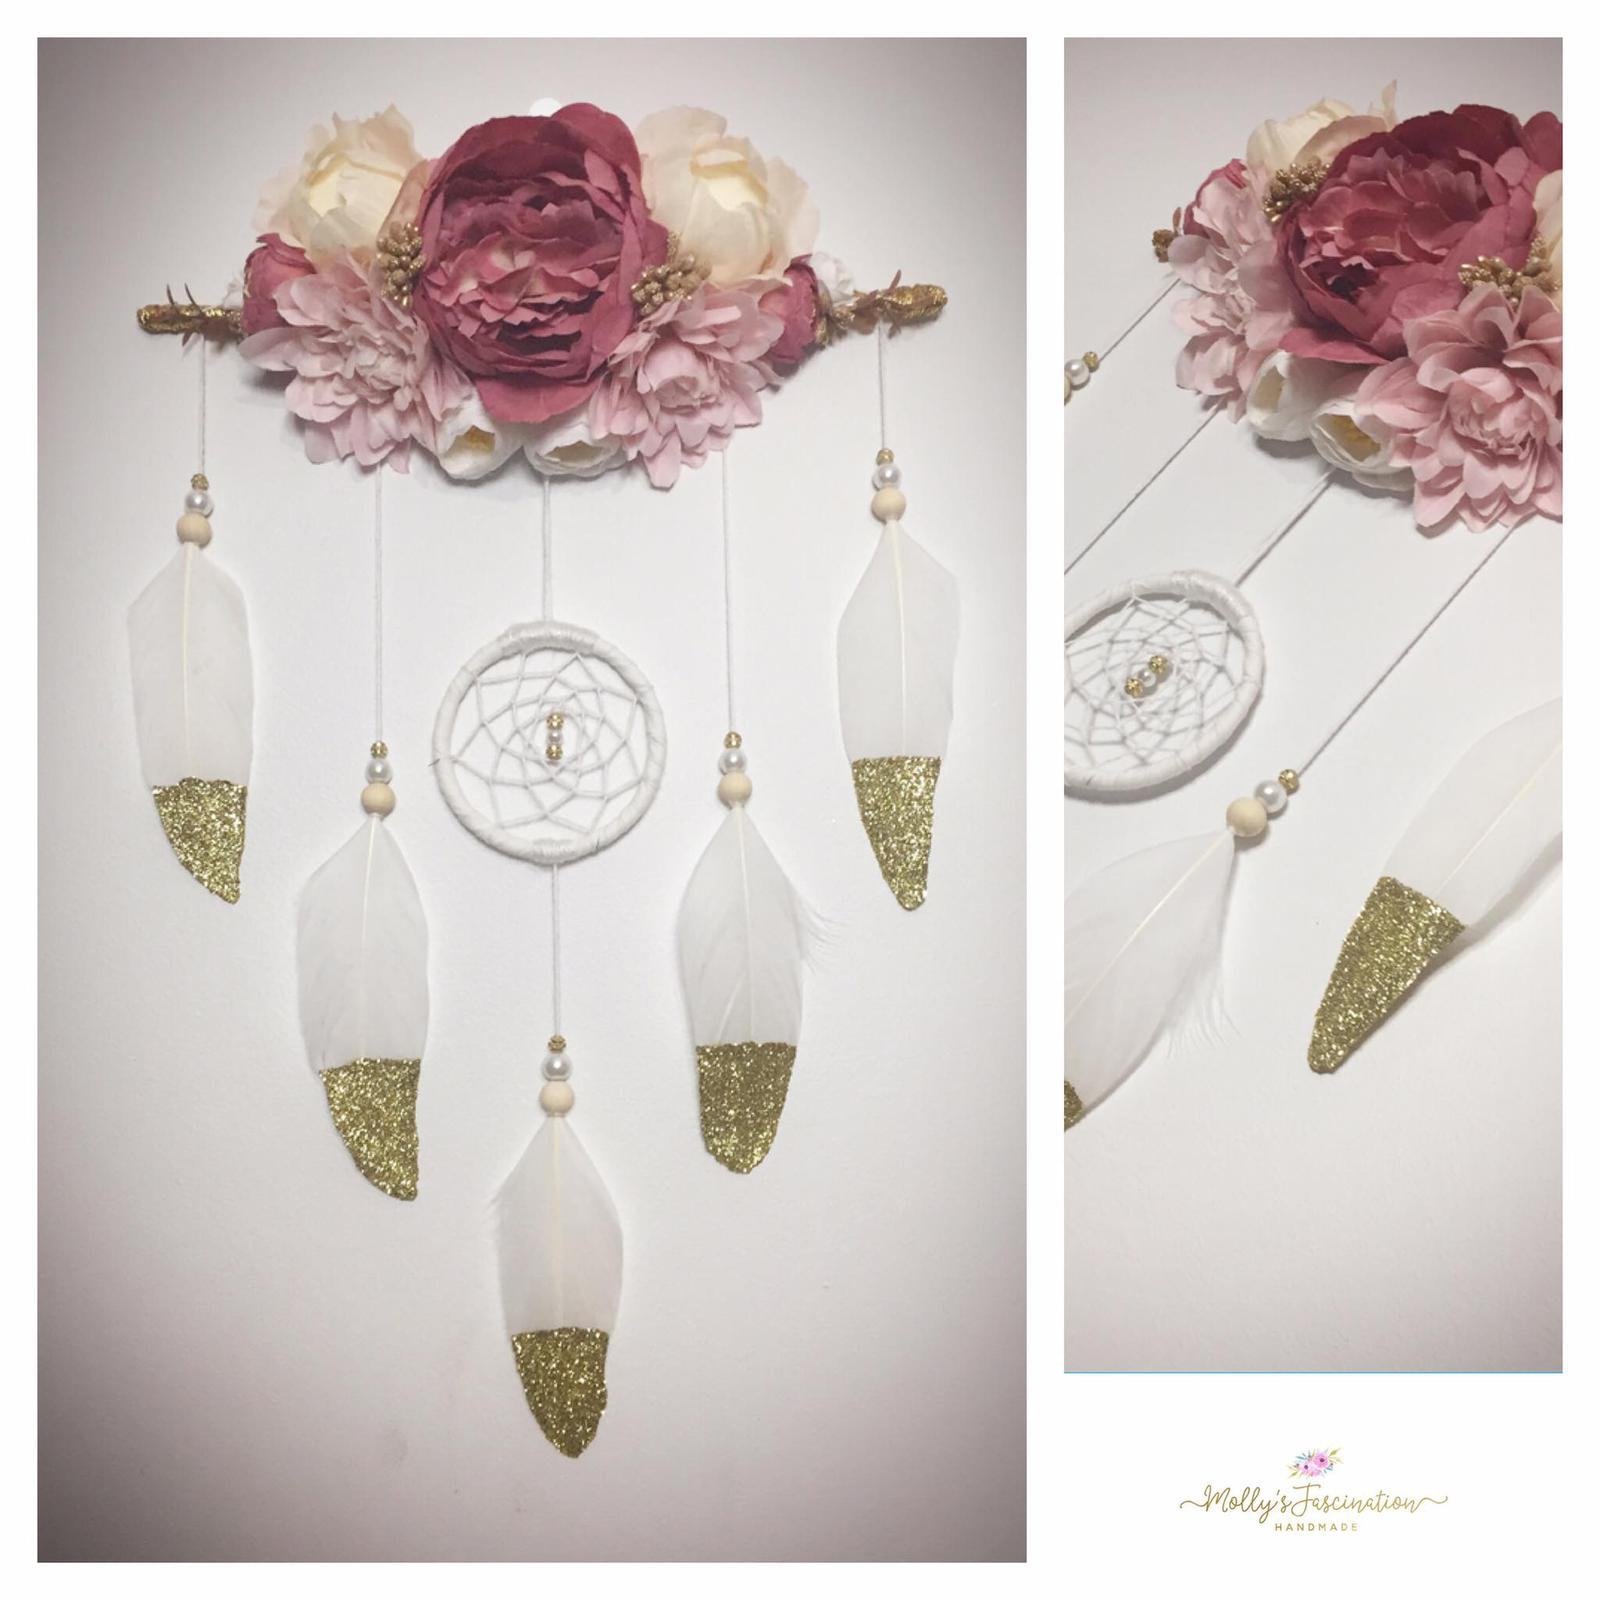 Boho style dream catchers